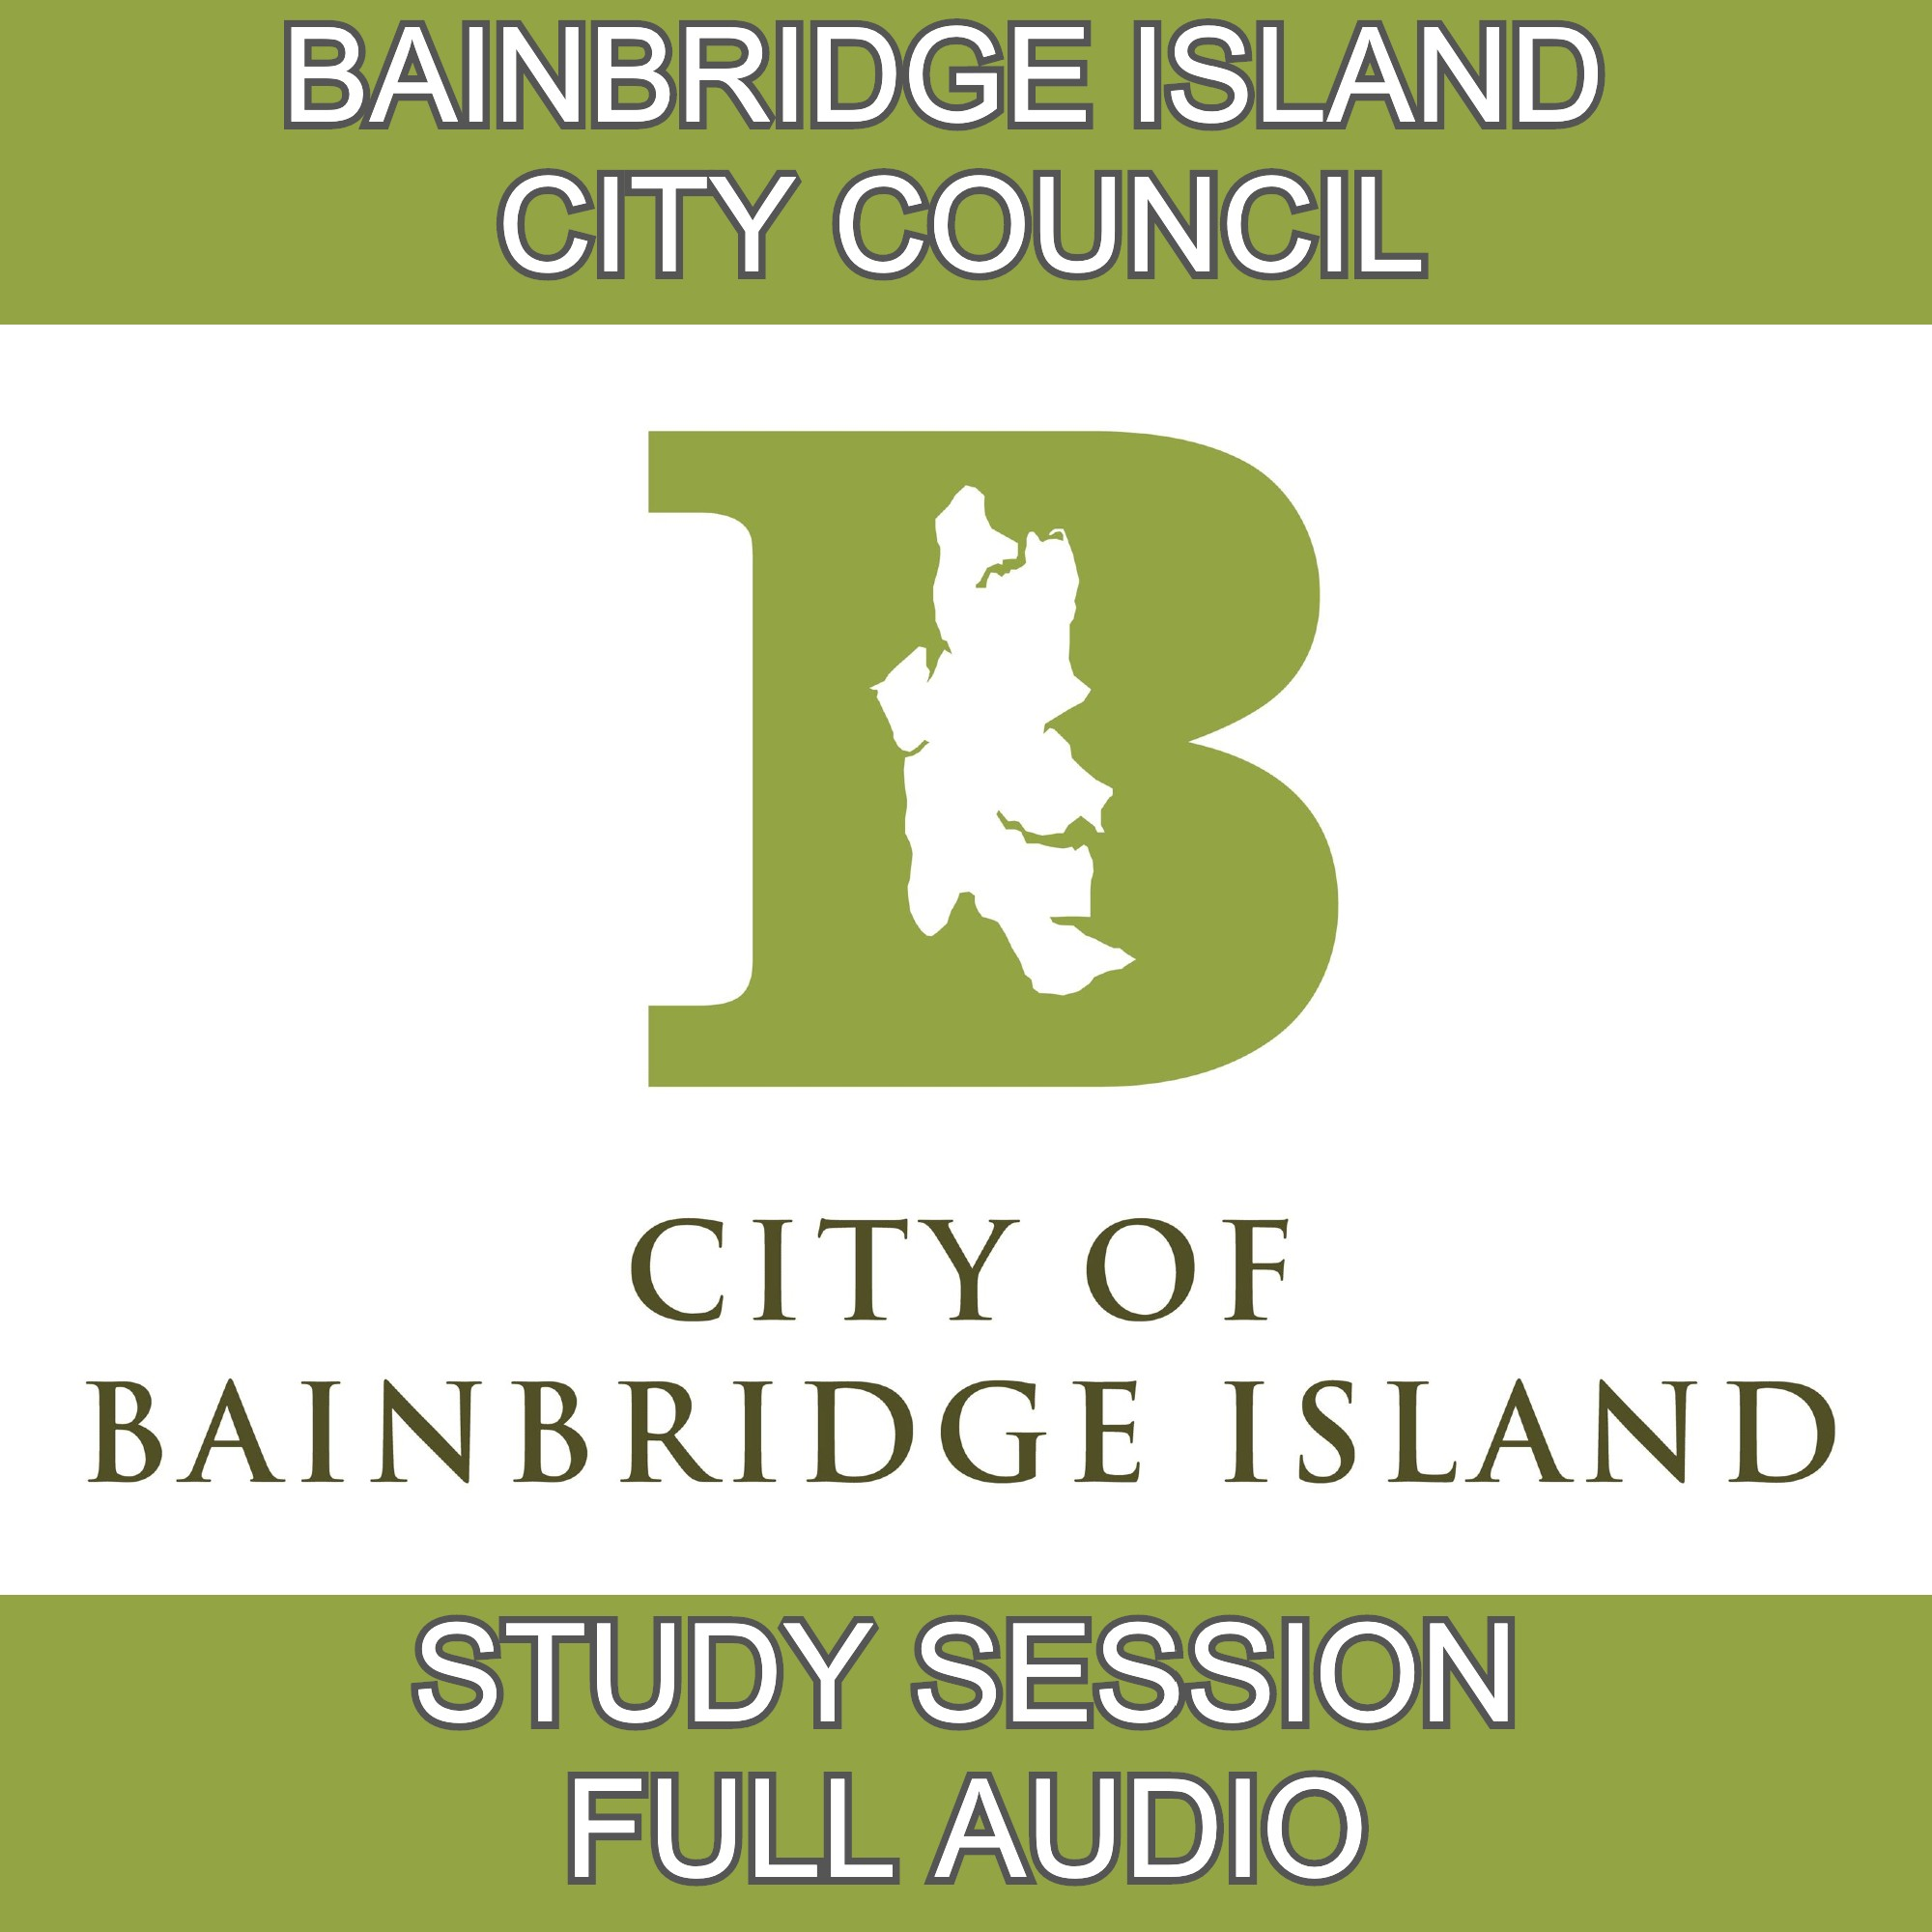 CITY COUNCIL STUDY SESSION CITY OF BAINBRIDGE ISLAND | TUESDAY, OCTOBER 06, 2020